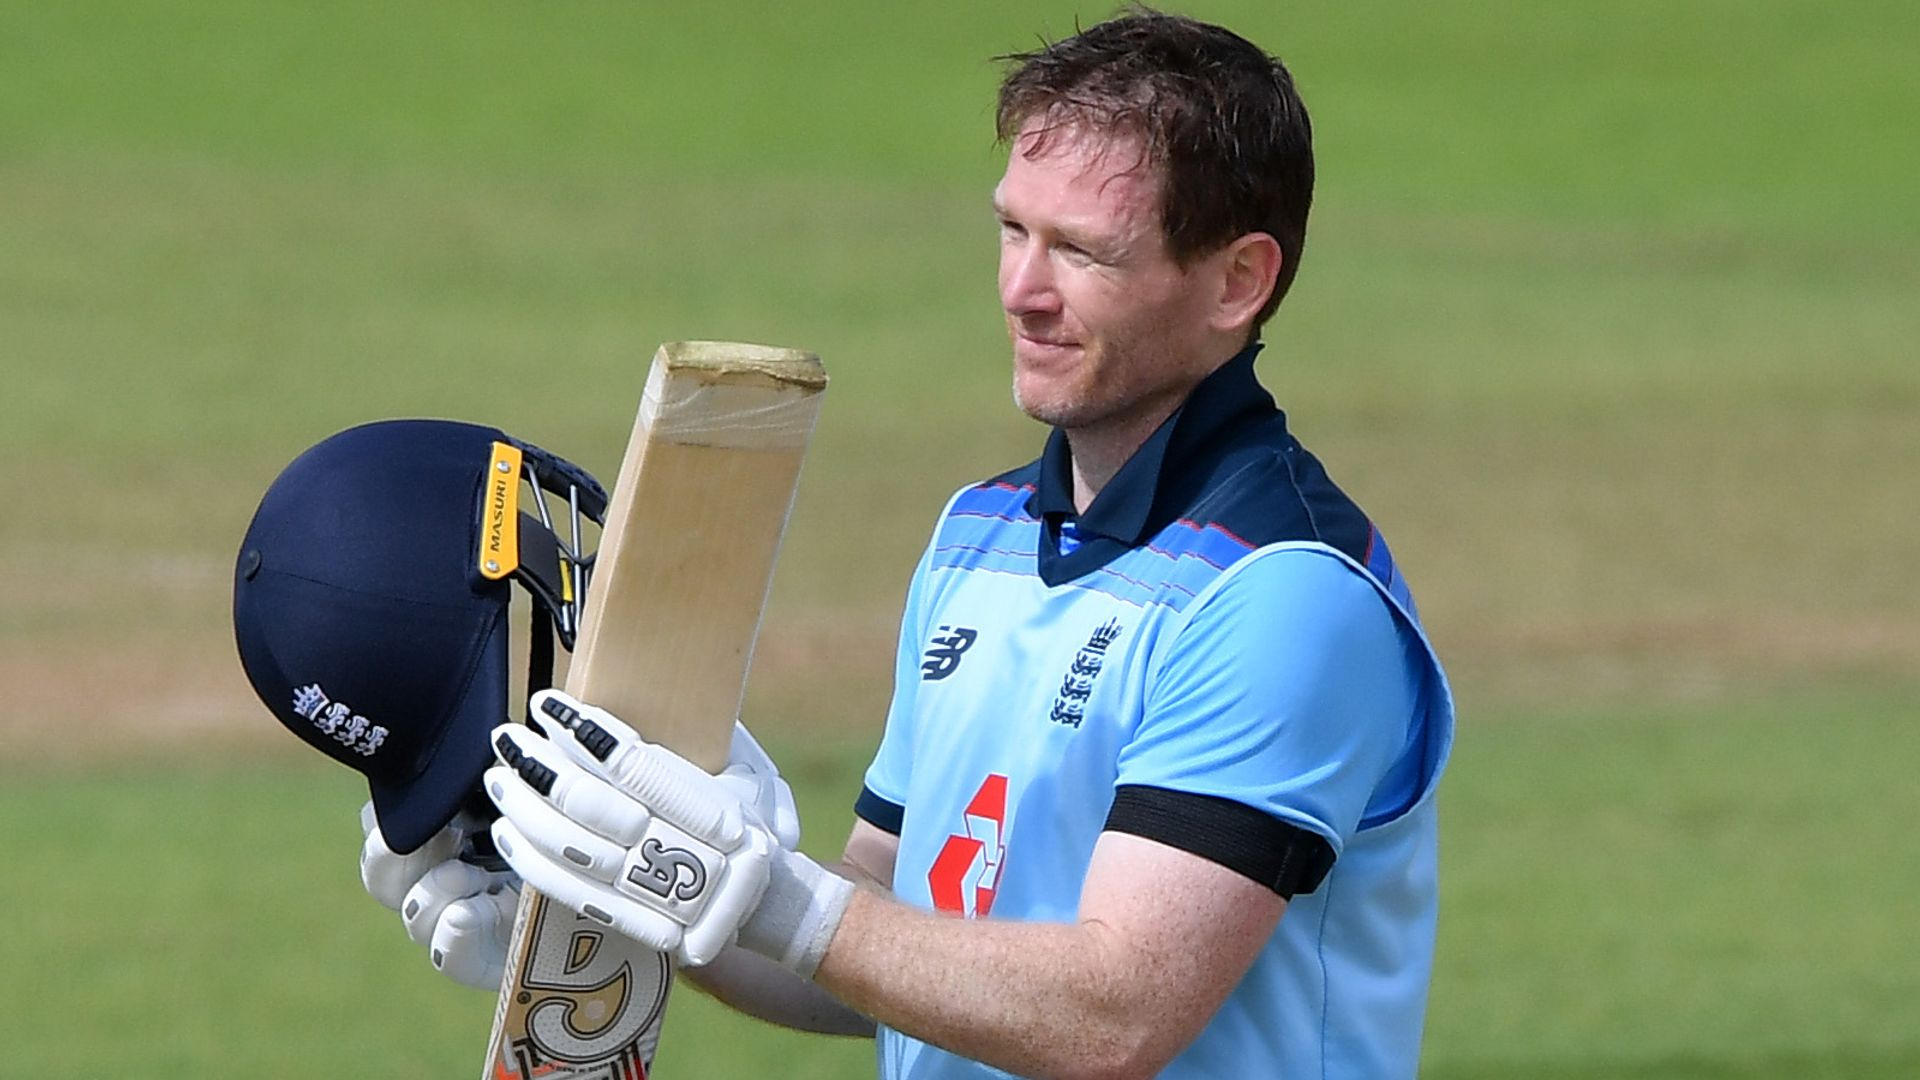 Morgan: England players can opt out of tours